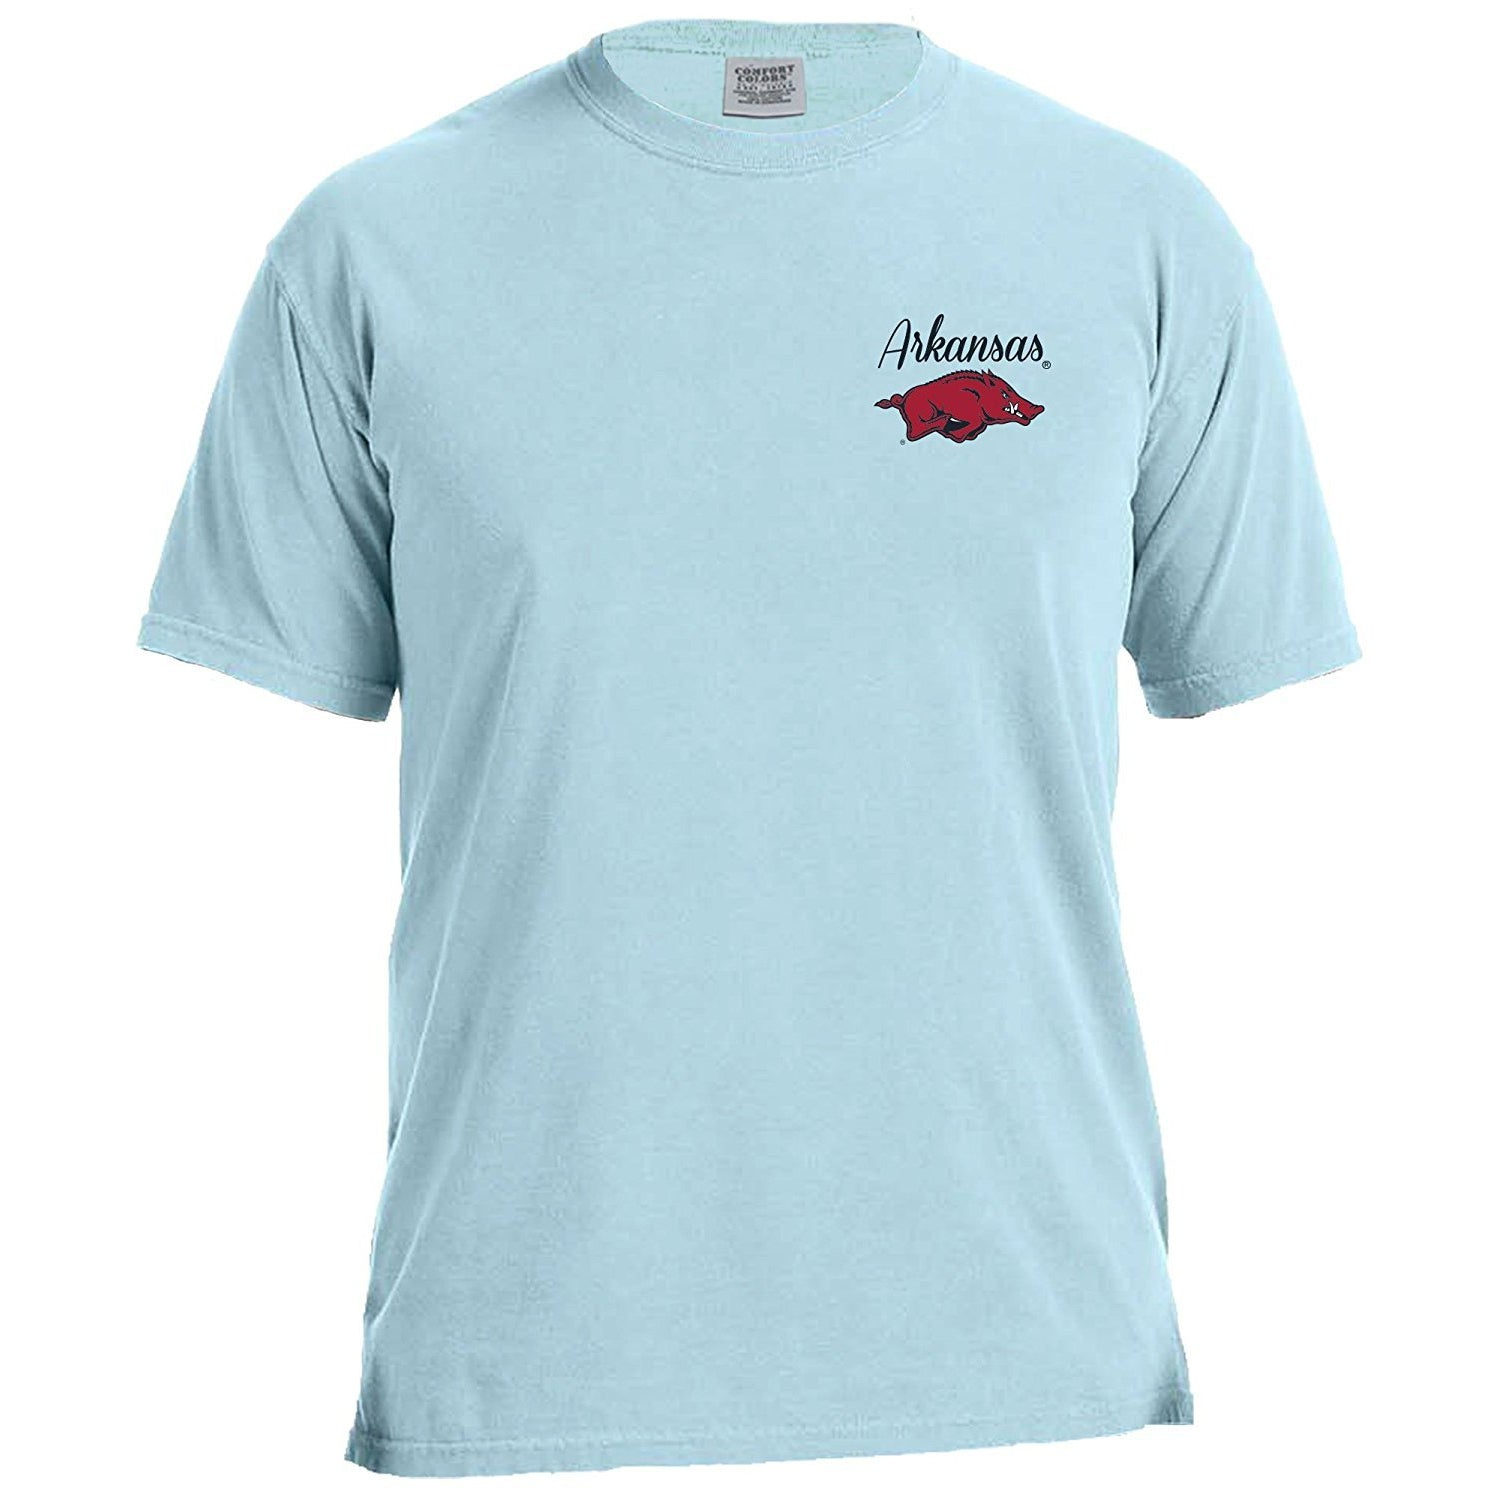 Love the South T-Shirt - Arkansas - Southern Ivy Boutique